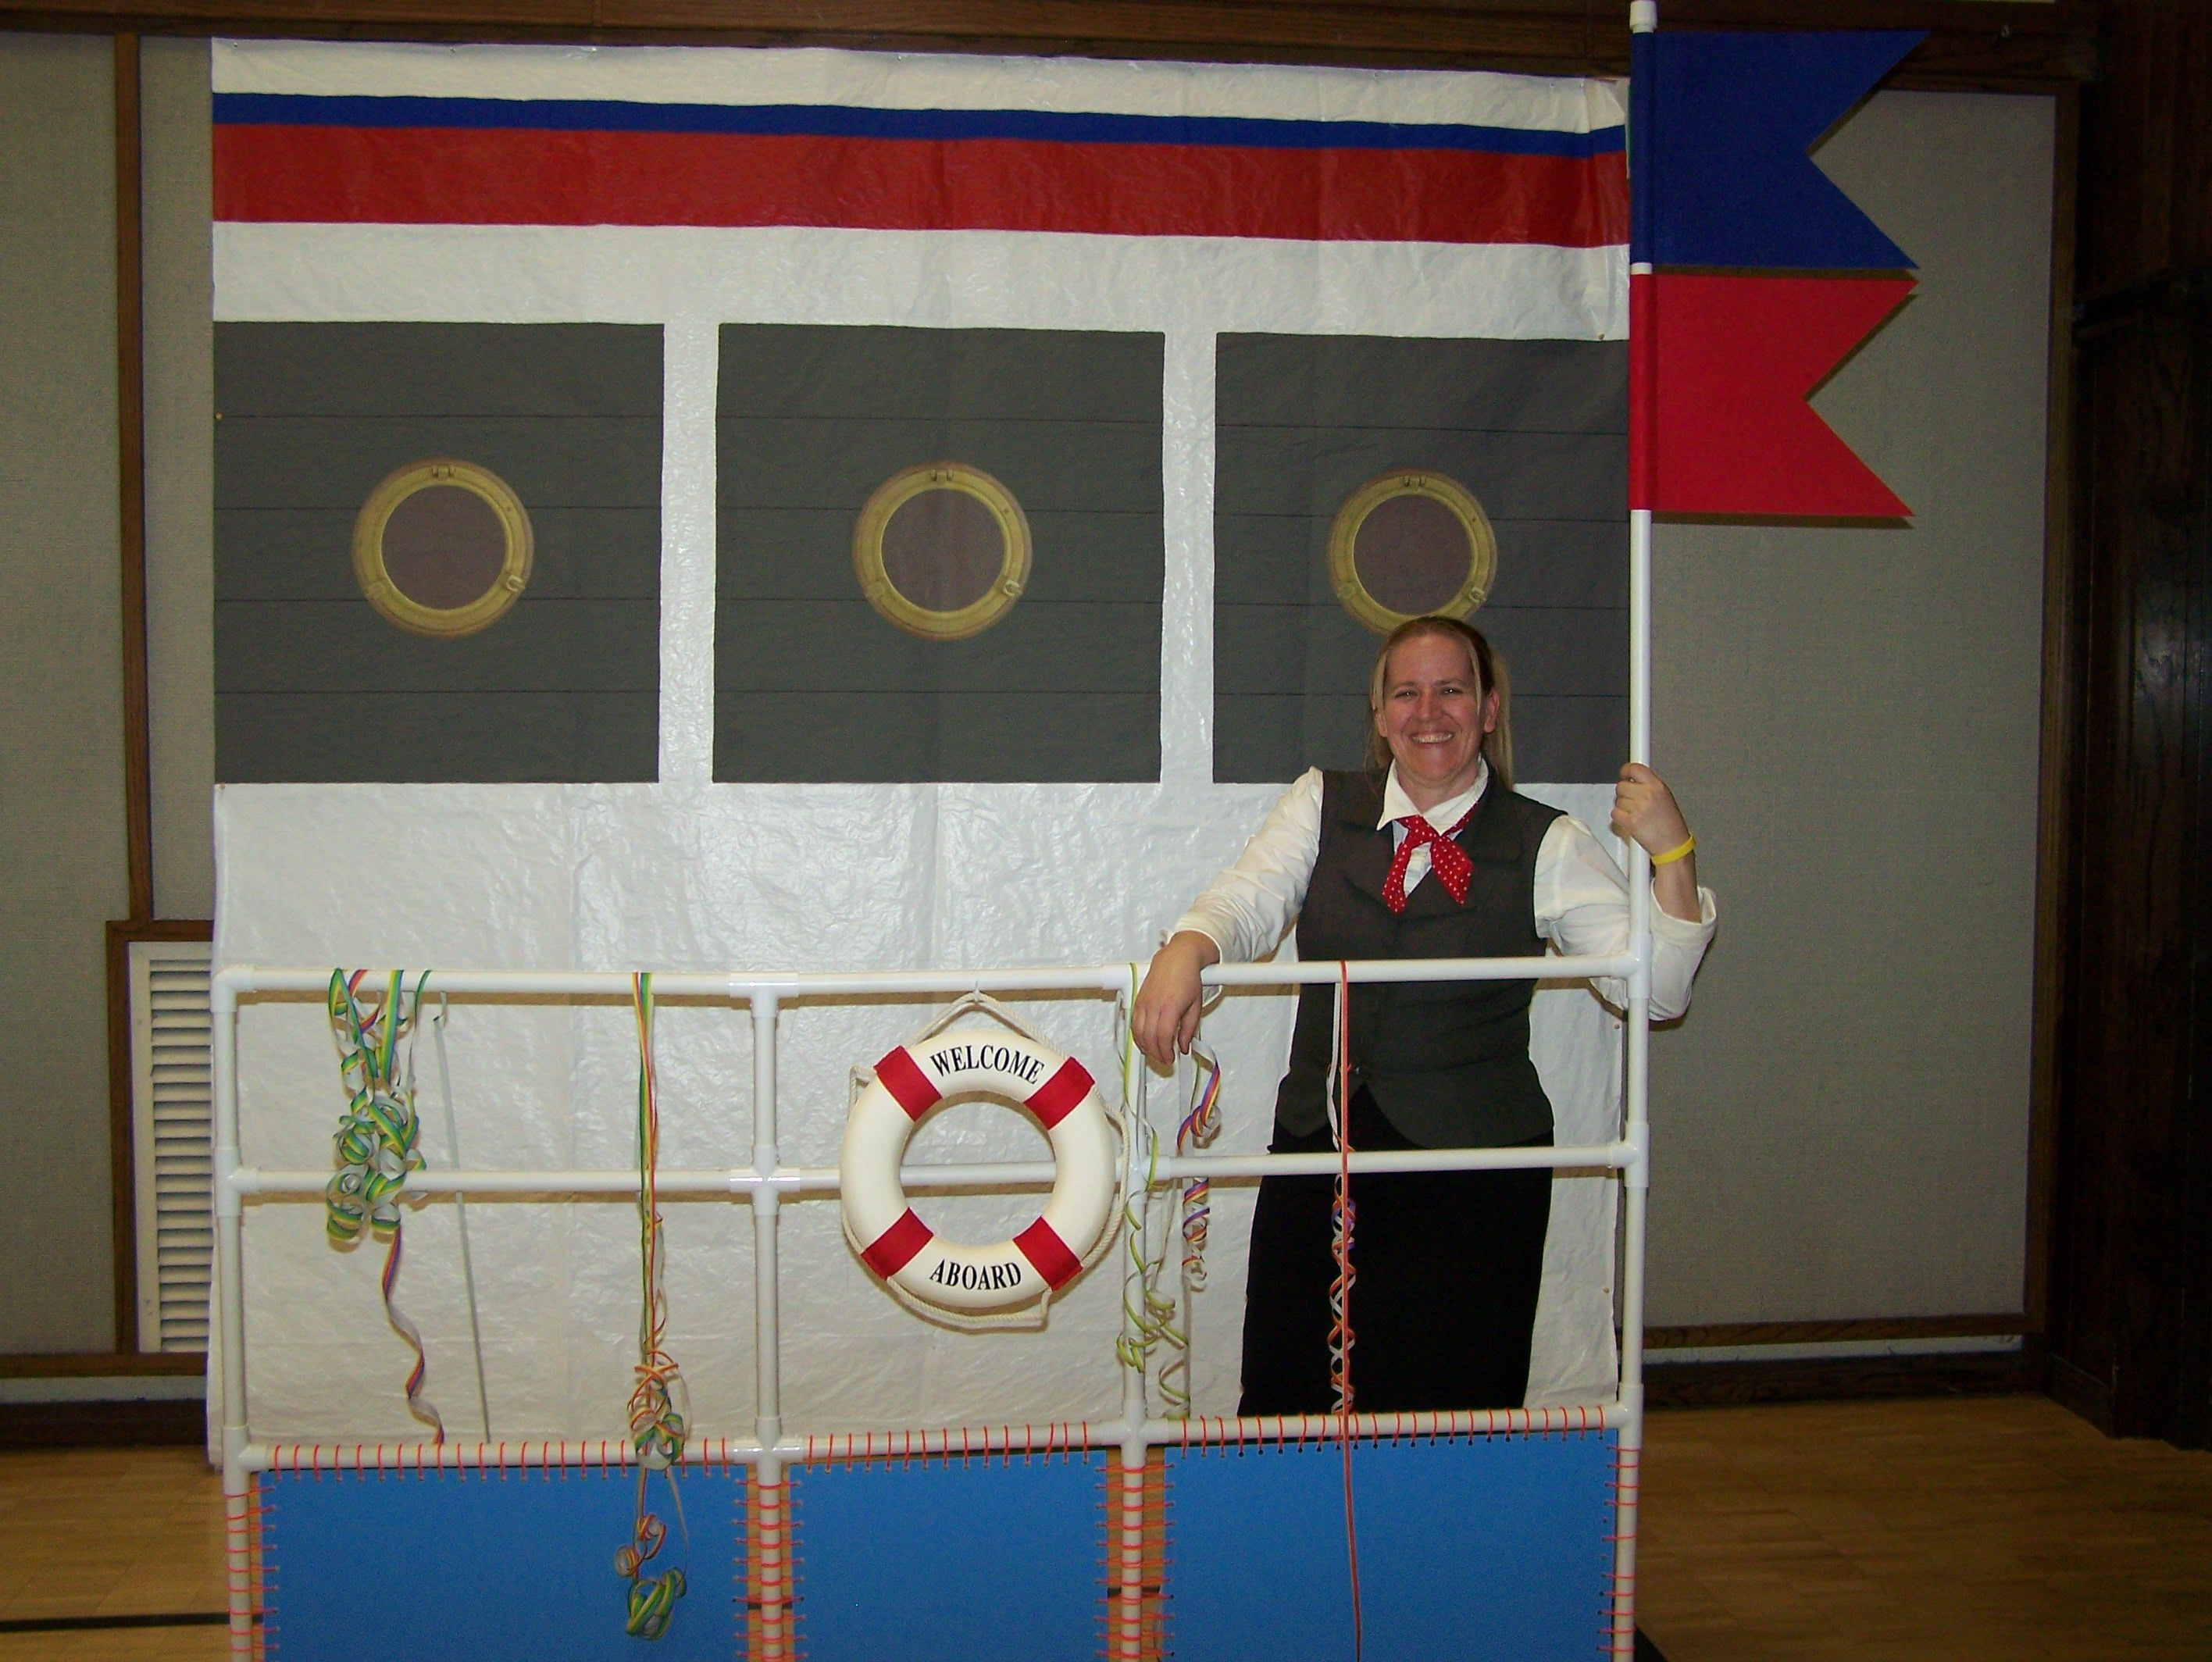 Welcome aboard boat ships life ring clock - Made A Port Of Call From Pvc Pipe And Painted A Ship Background For A Church